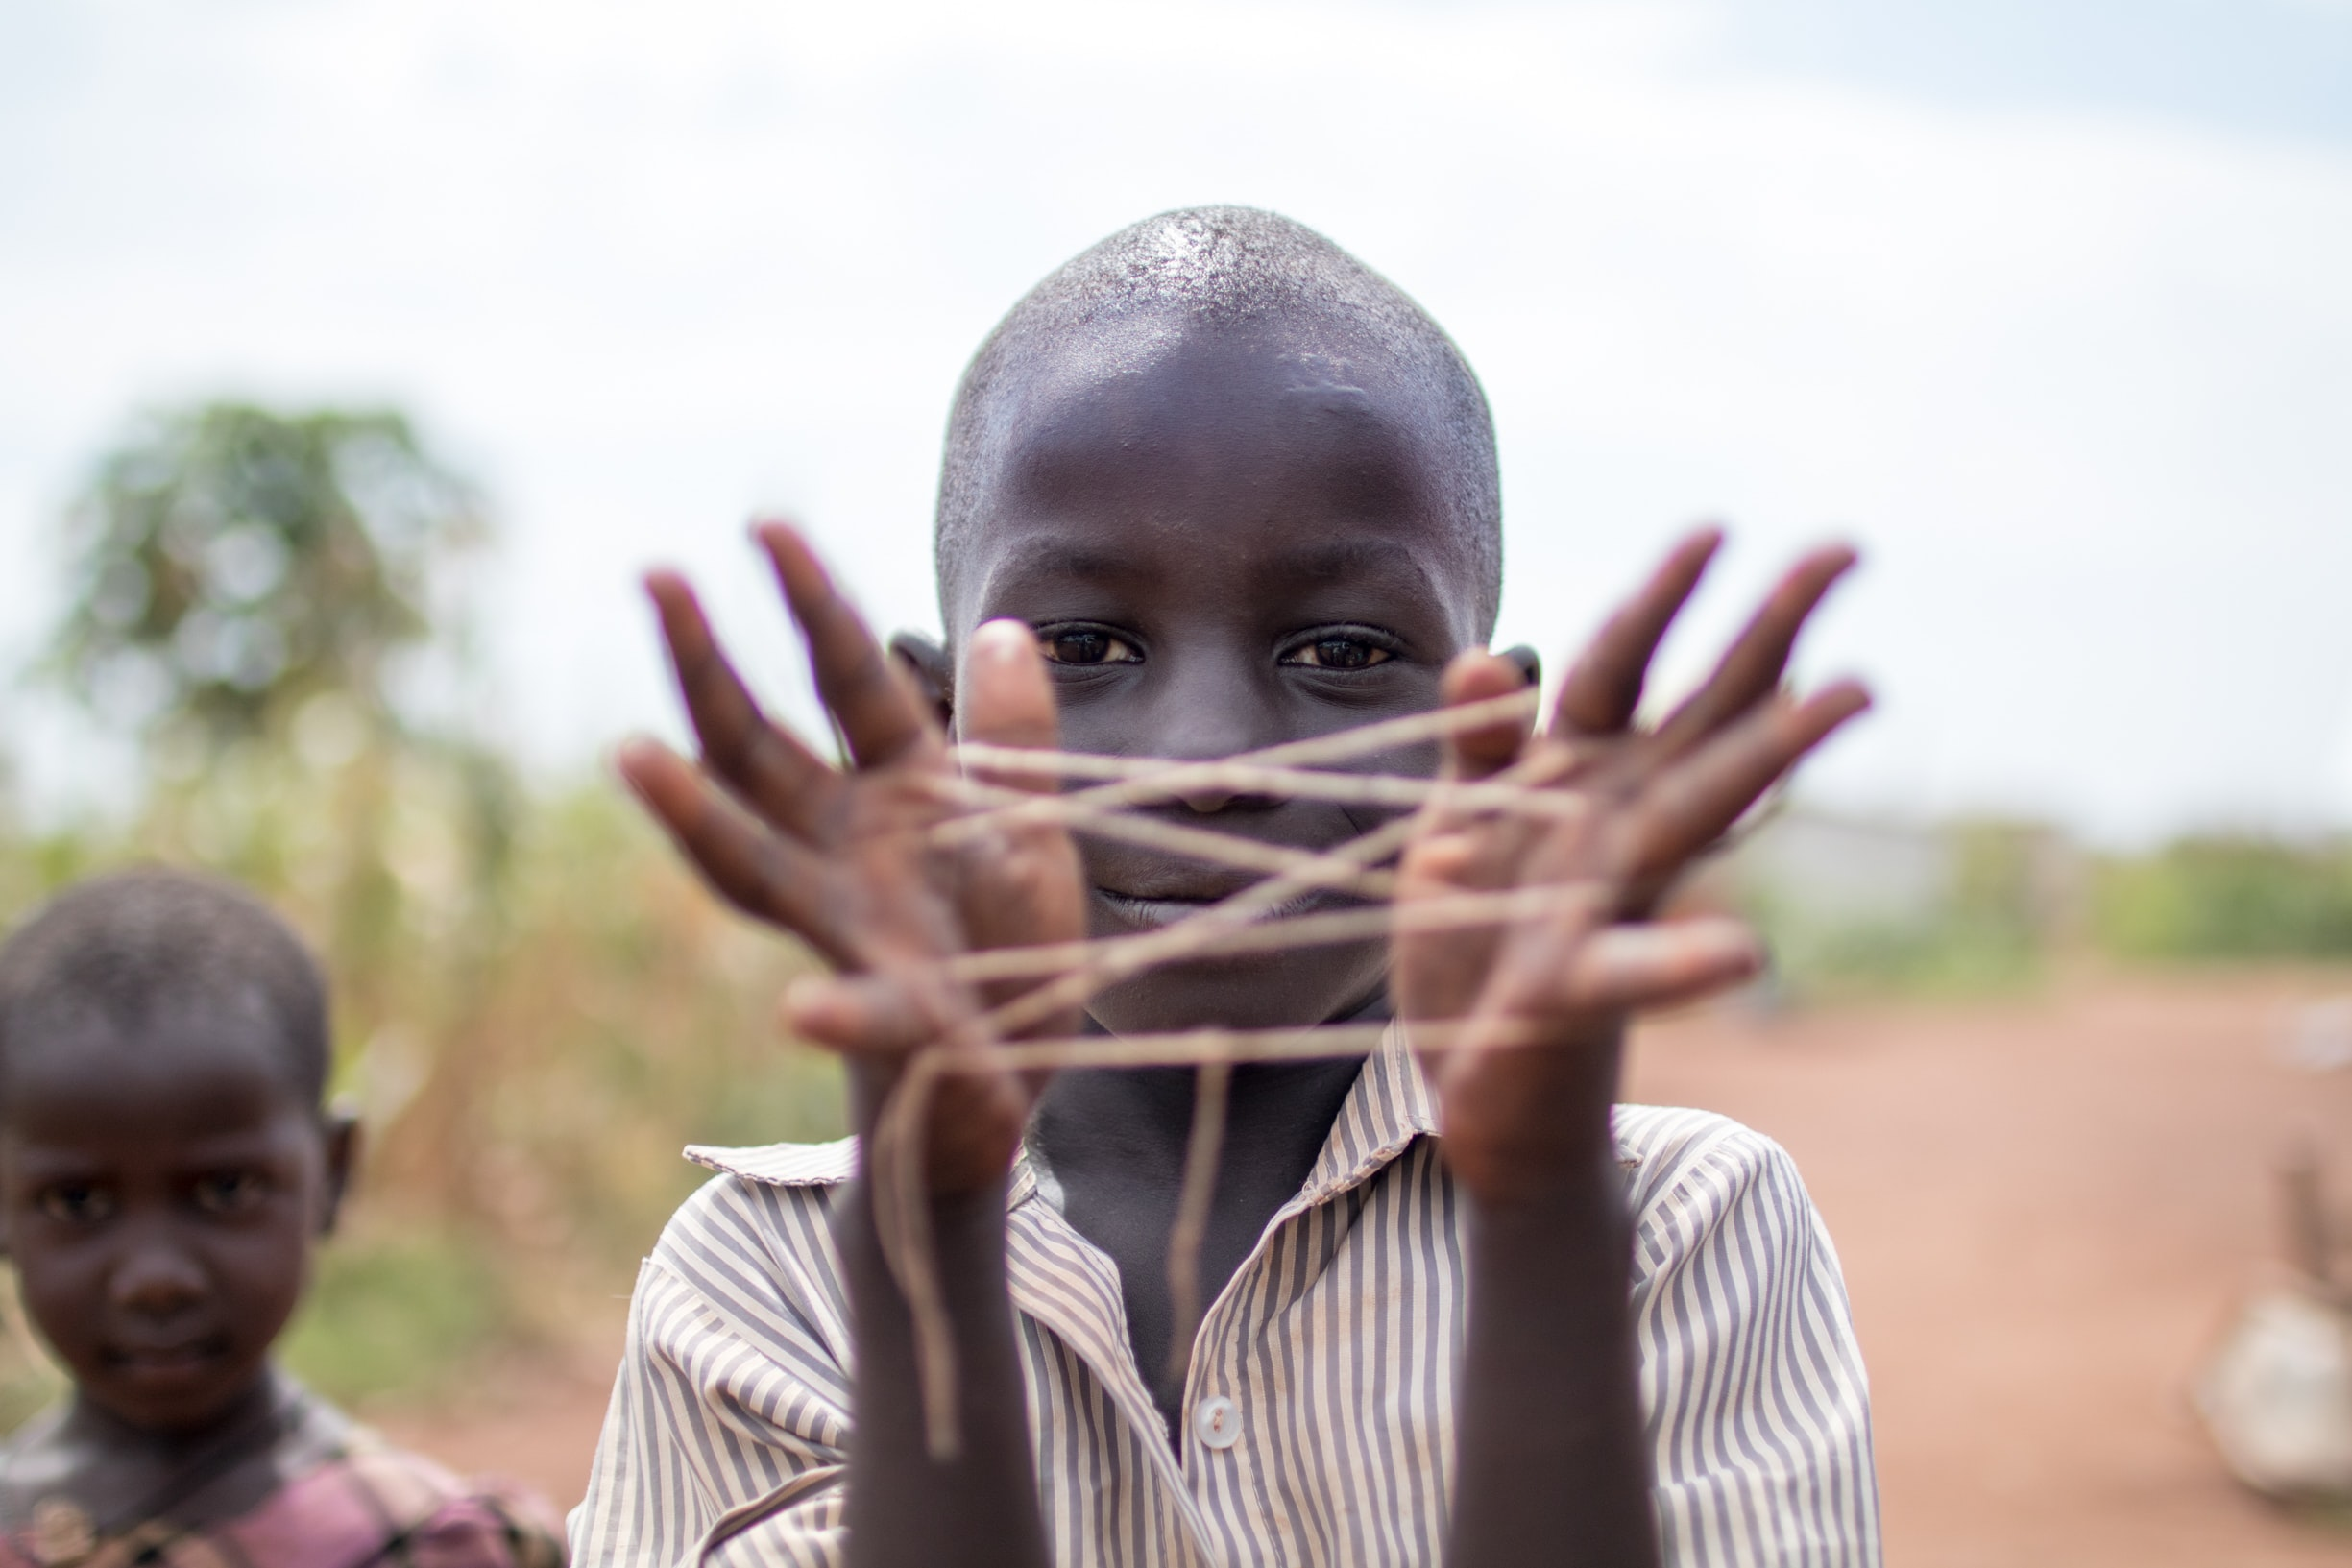 Ugandan Child Playing a Game